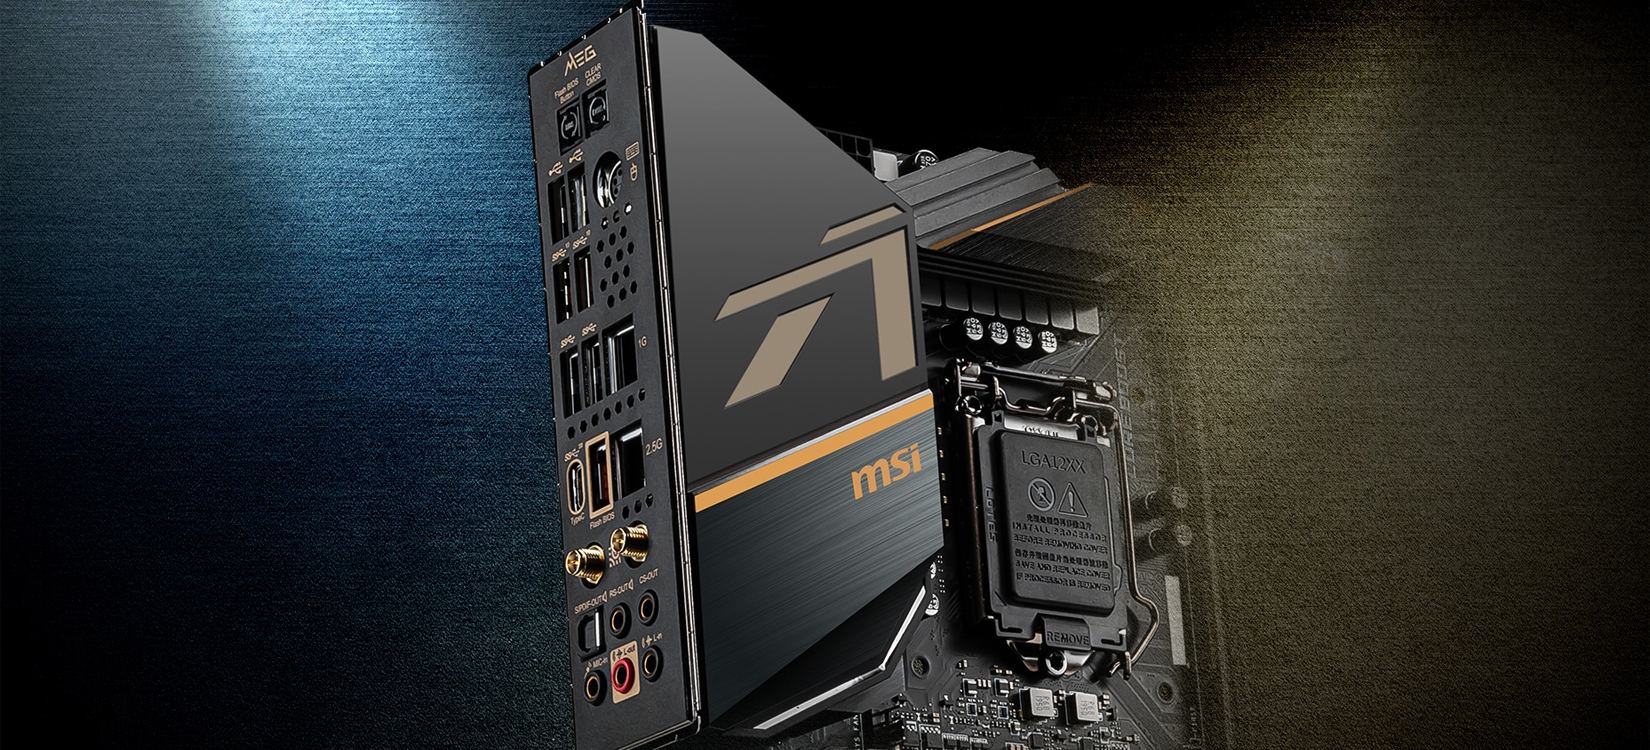 Mainboard MSI MEG Z490 ACE (Intel Z490, Socket 1200, ATX, 4 khe RAM DDR4)